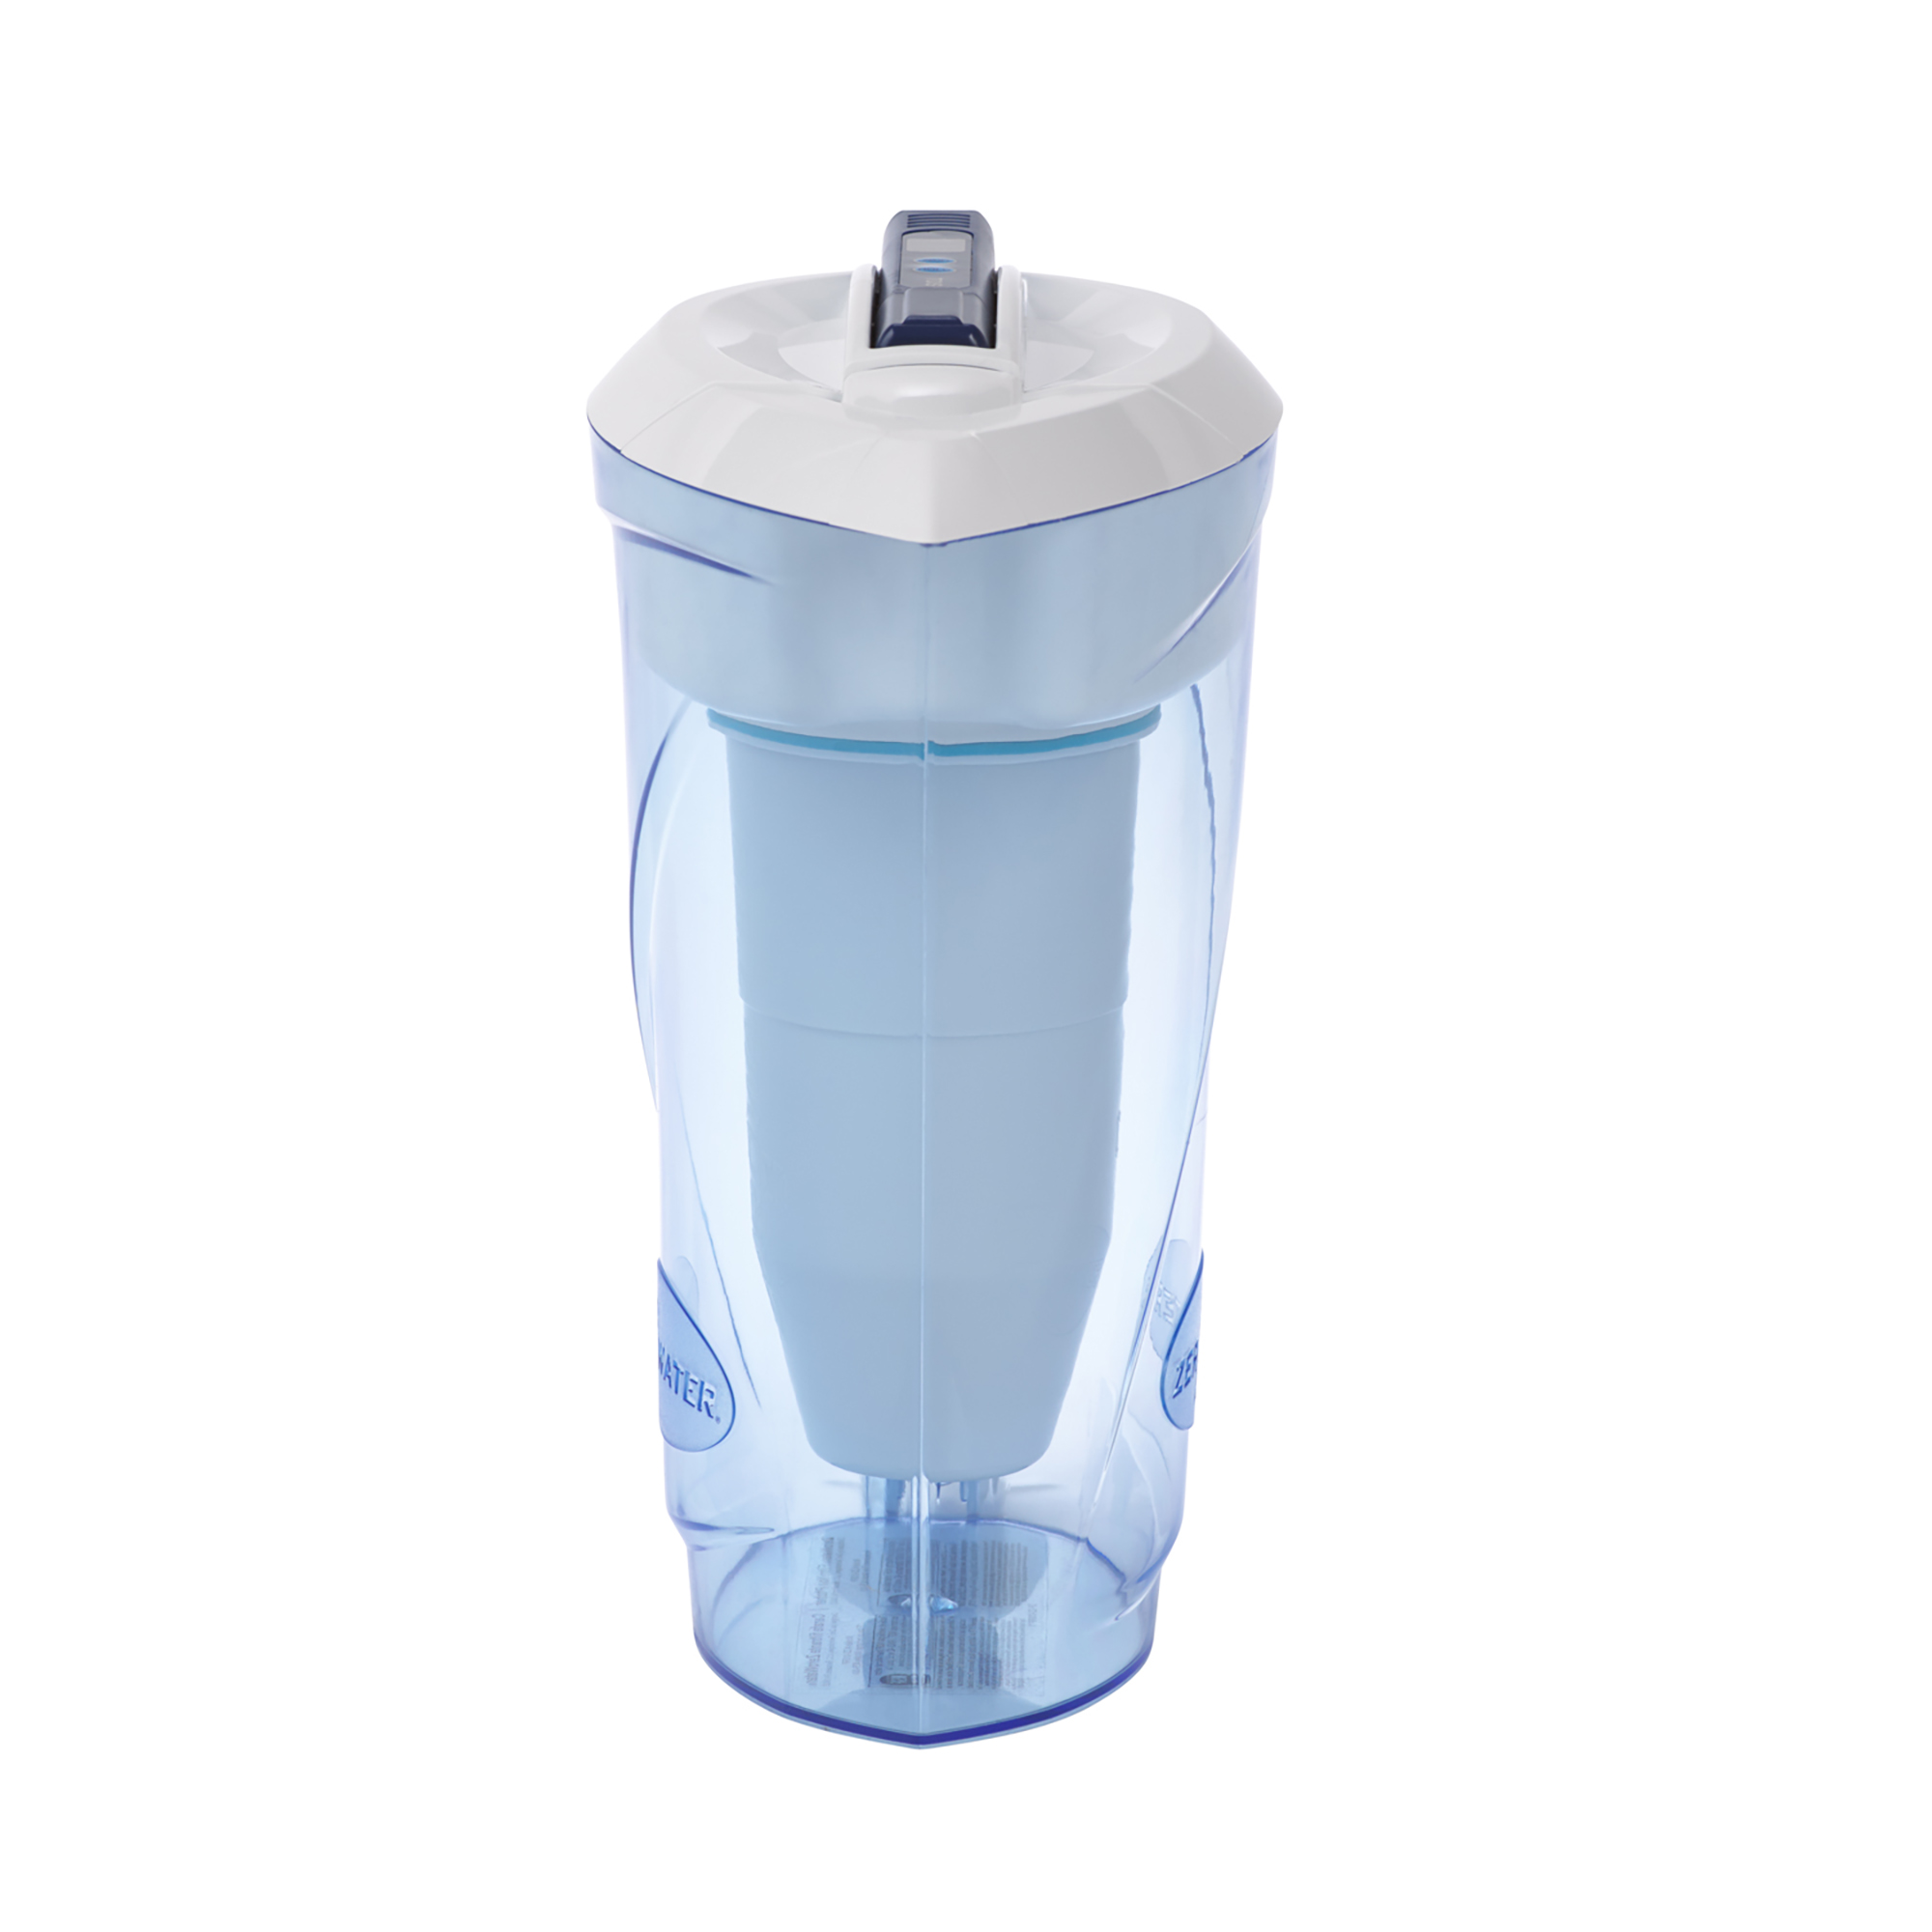 Zerowater Jug With Free Filter And Tds Meter For Sale At Zerowater Eu